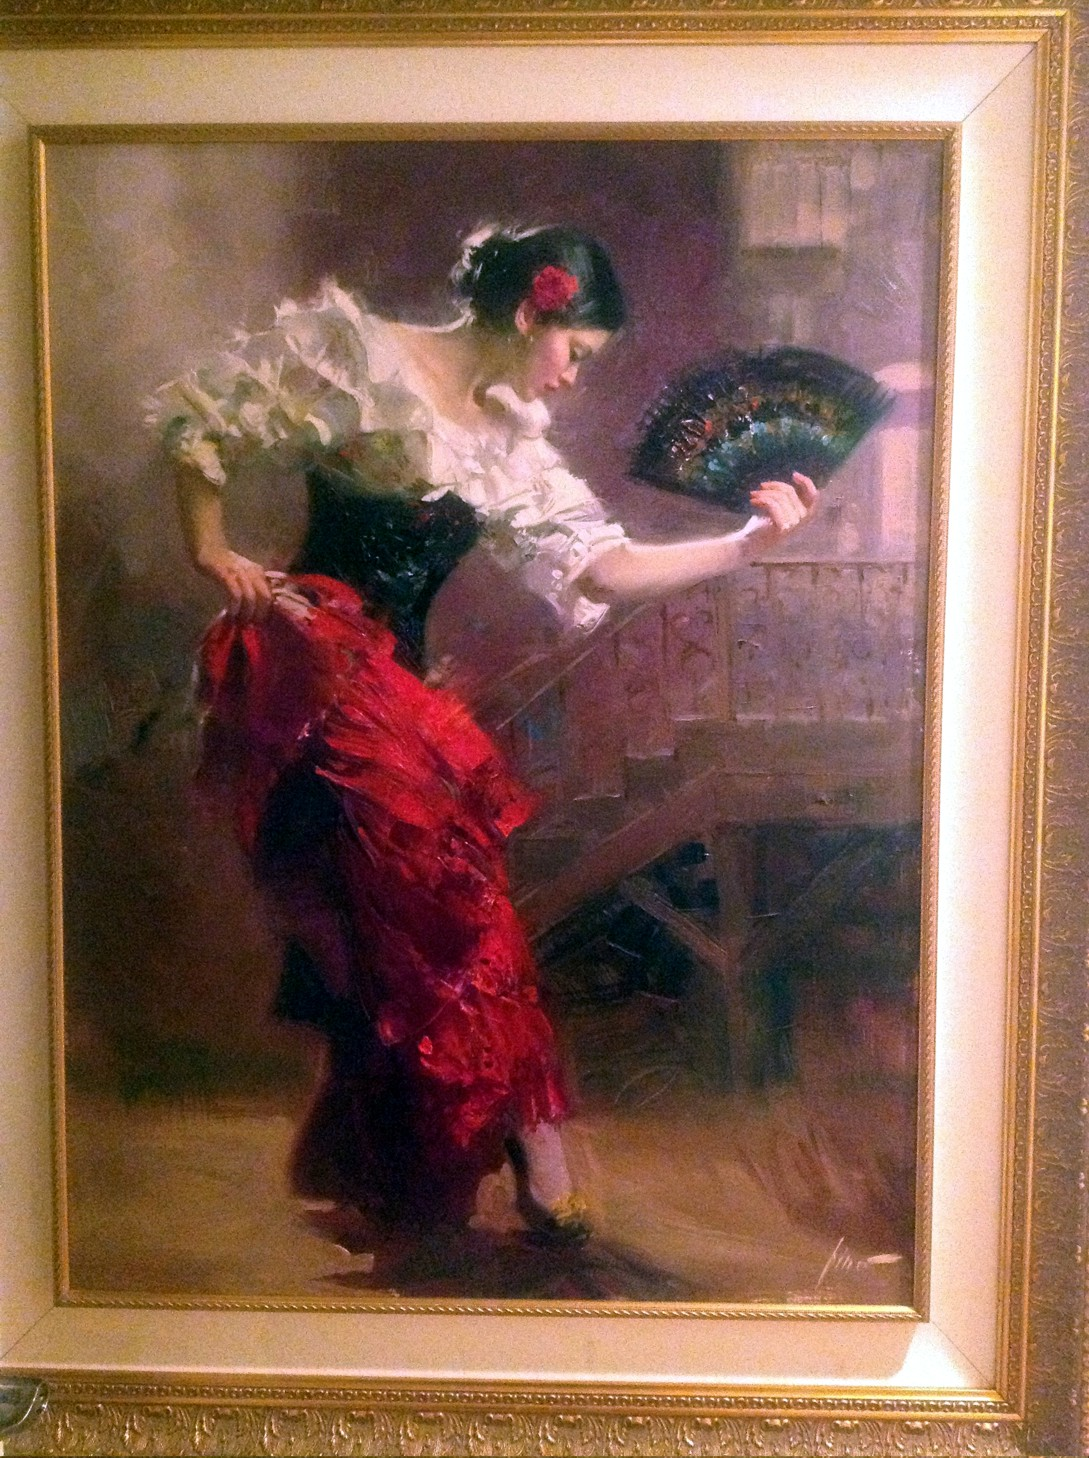 Spanish Dancer by Pino Original Painting, Oil on Canvas Size: 40 x 30